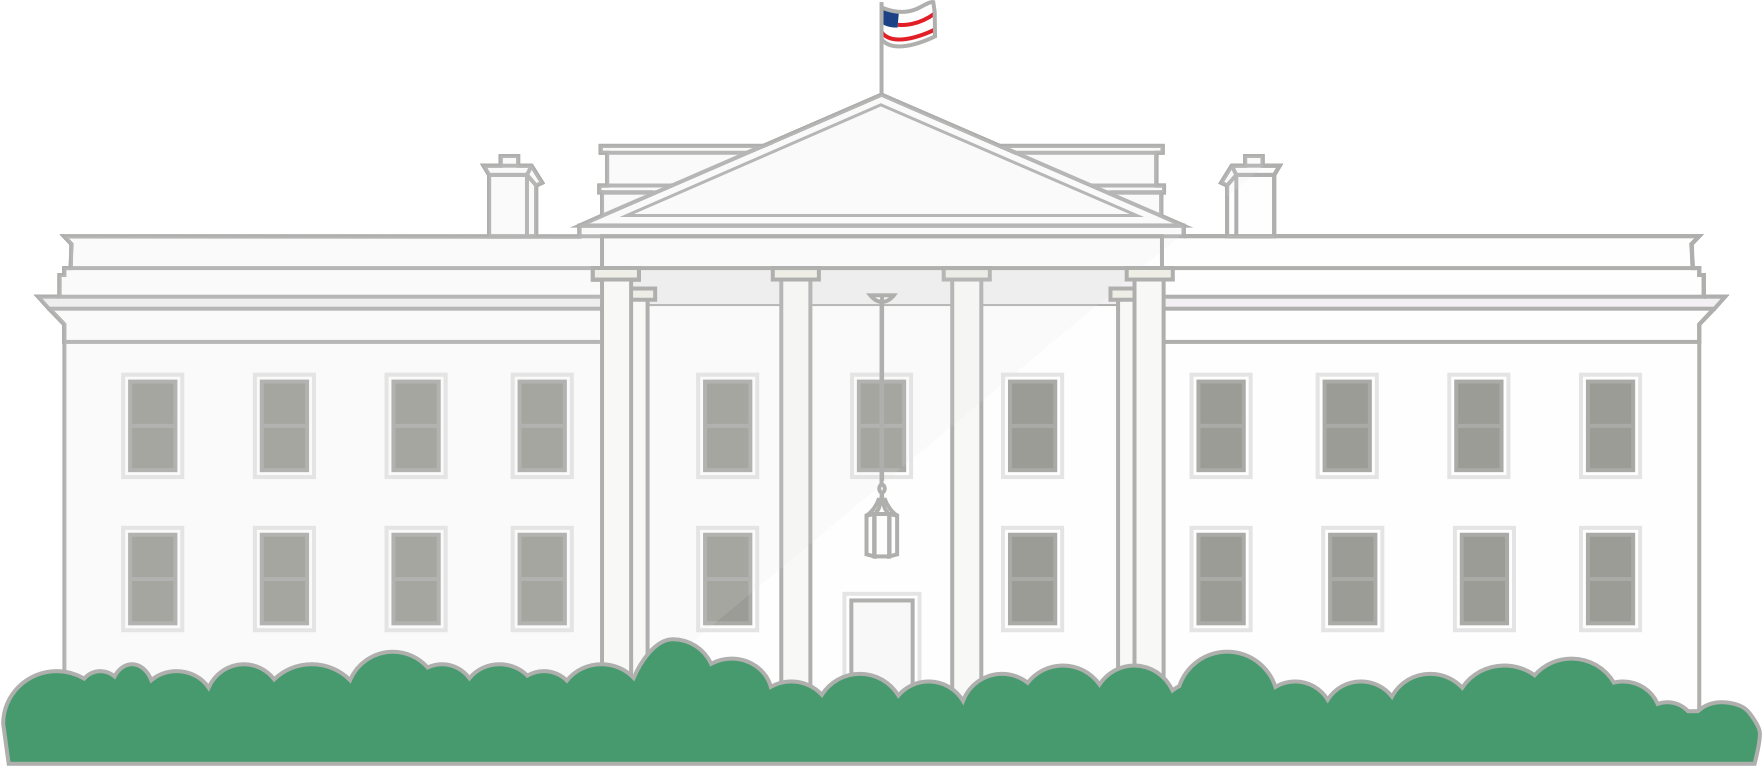 The white house png. Build a wall to